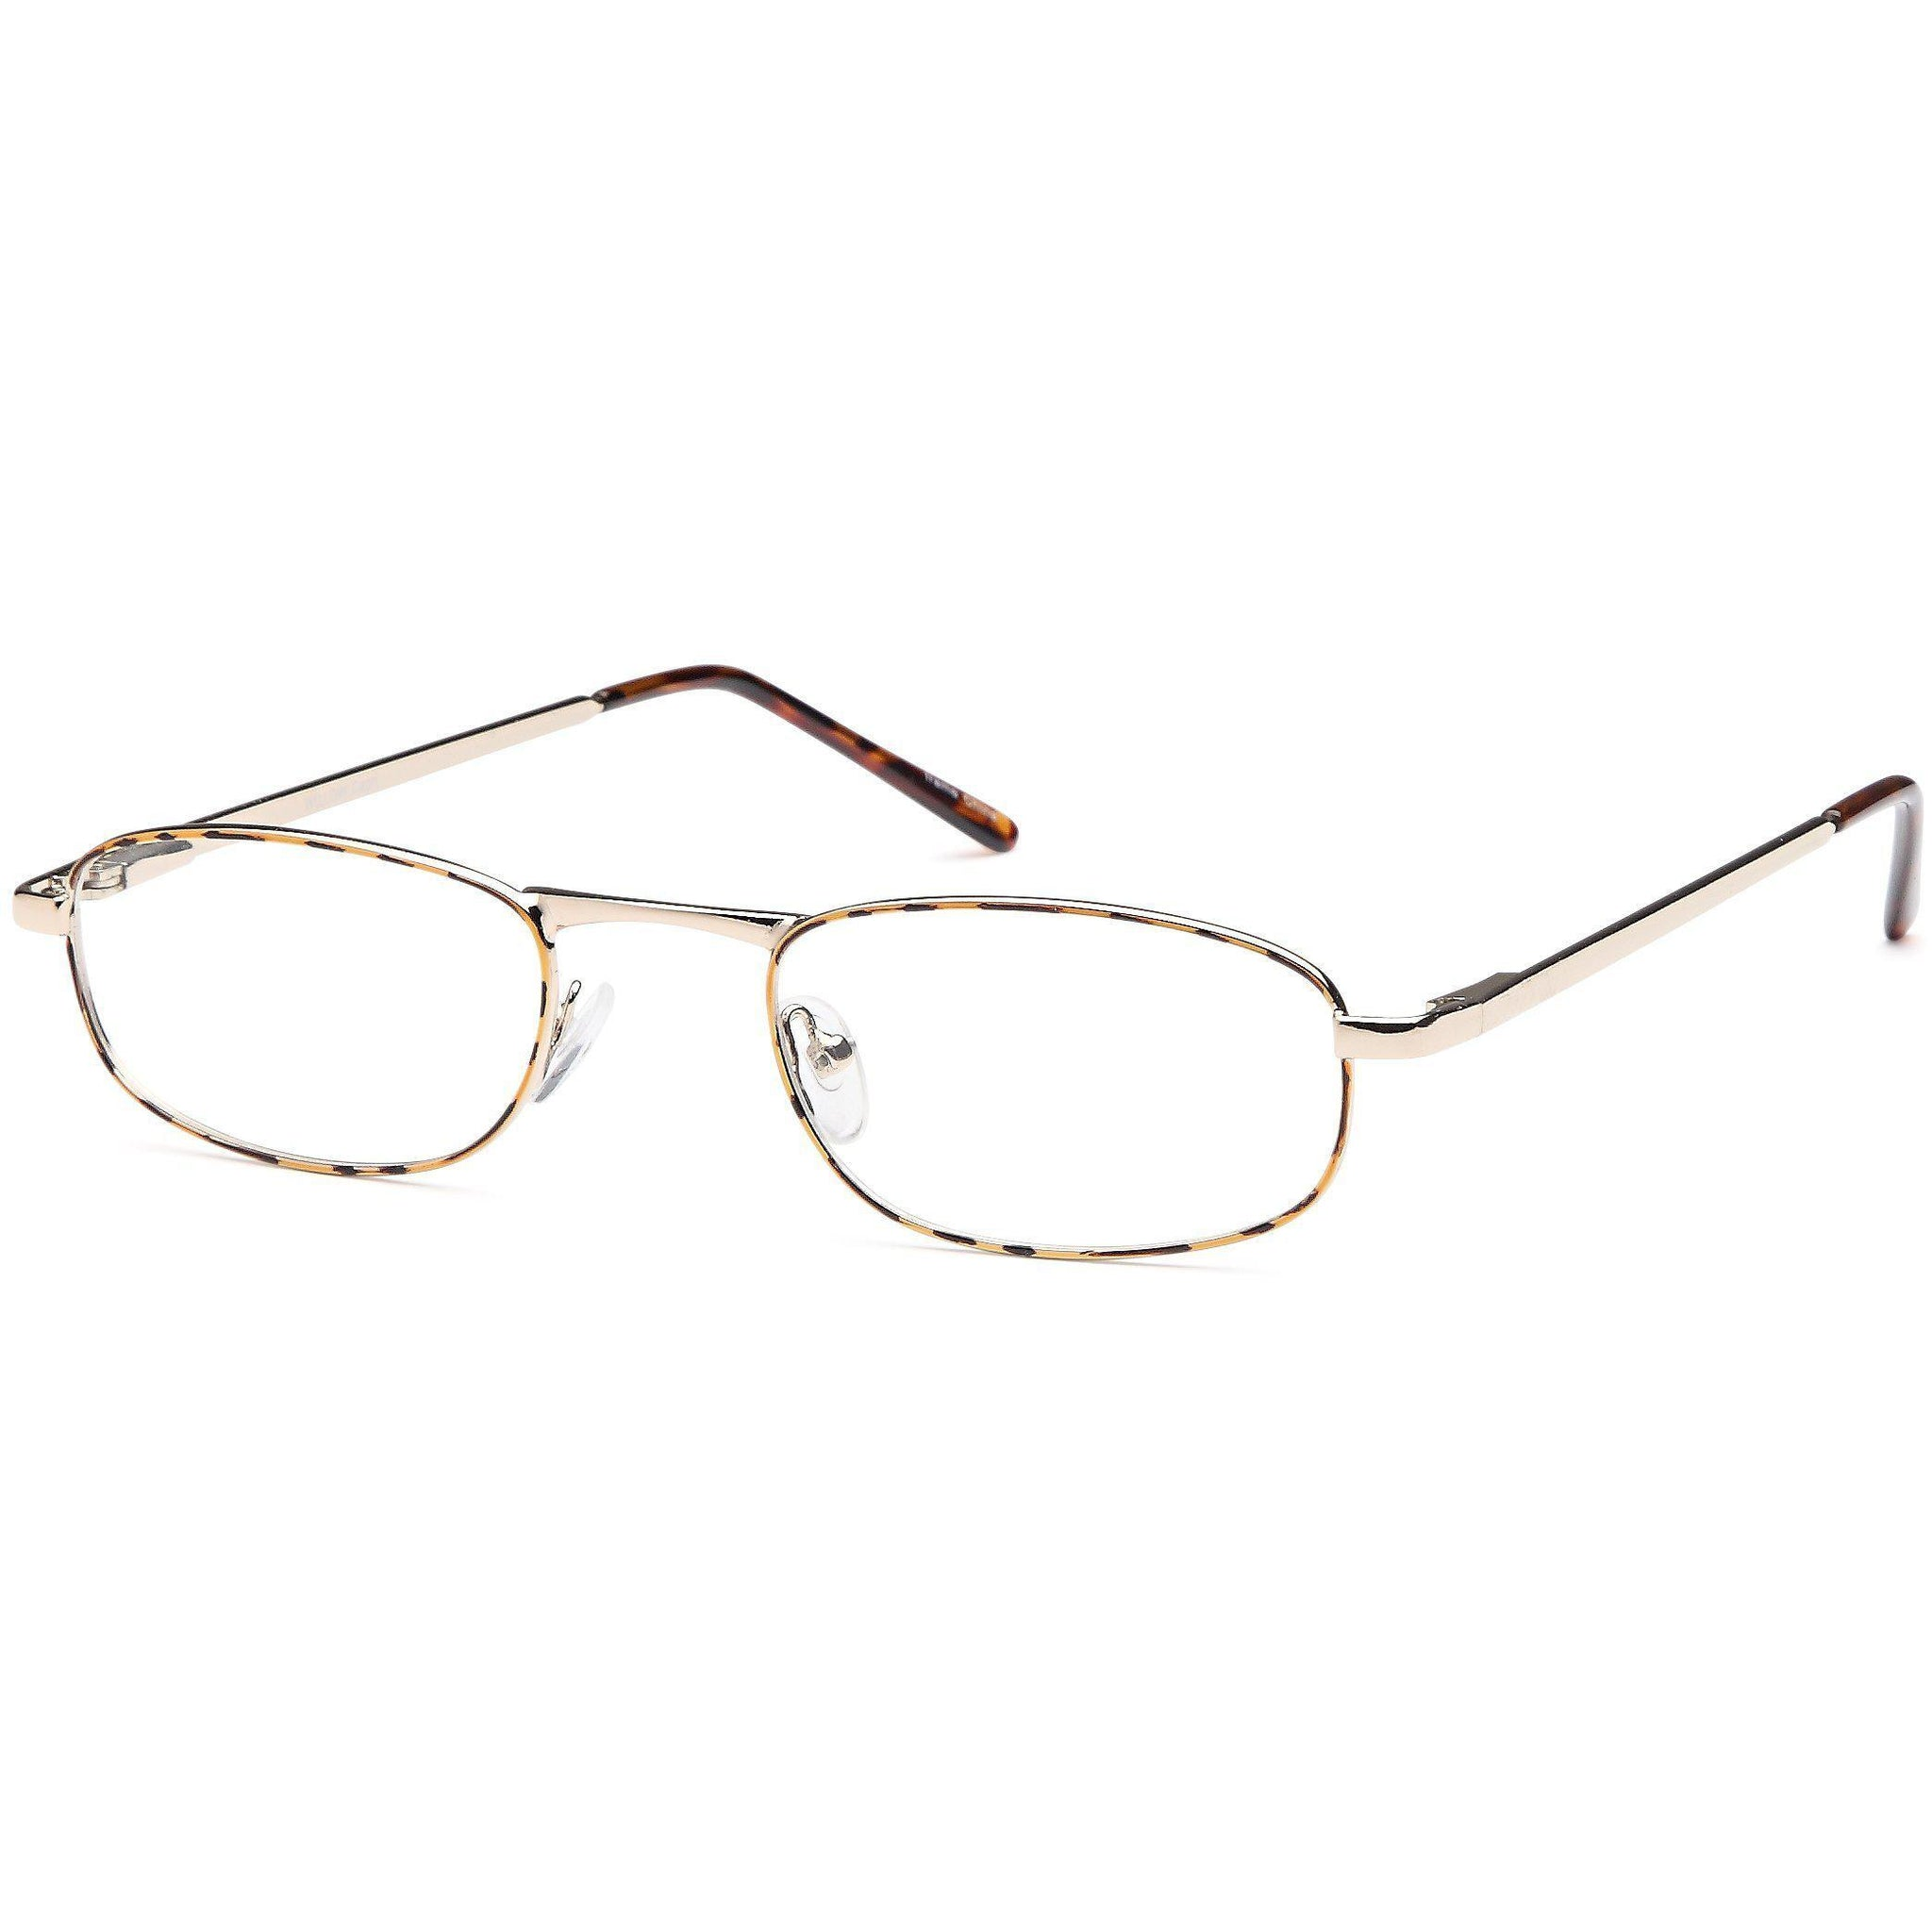 Appletree Prescription Glasses WILLOW Eyeglasses Frame